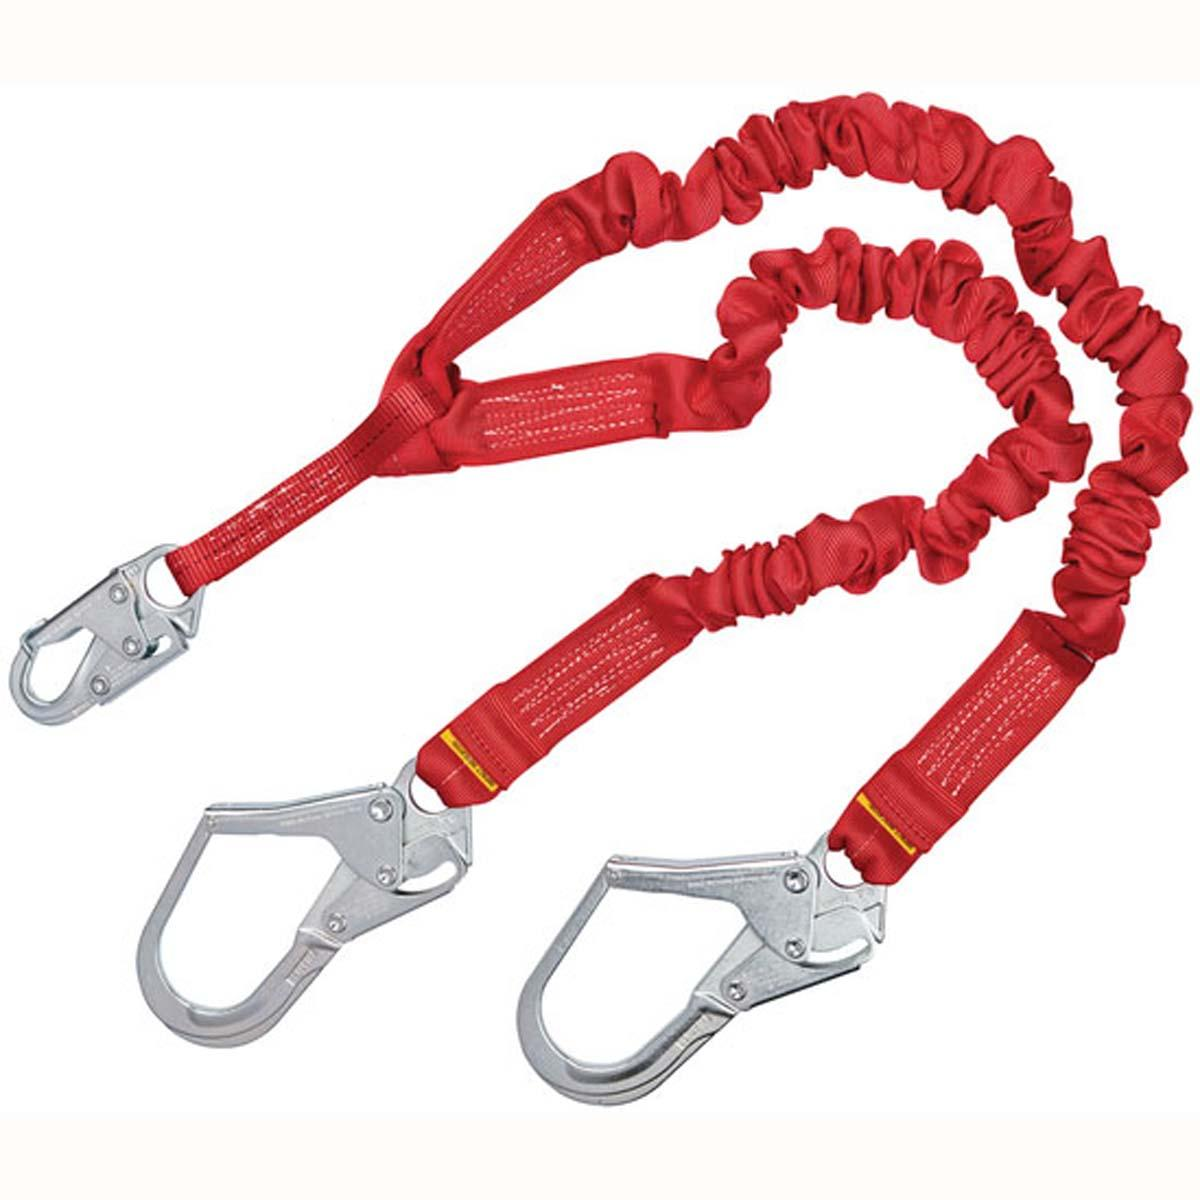 "PROâ""¢ Stretch 100% Tie-Off Shock Absorbing Lanyard"